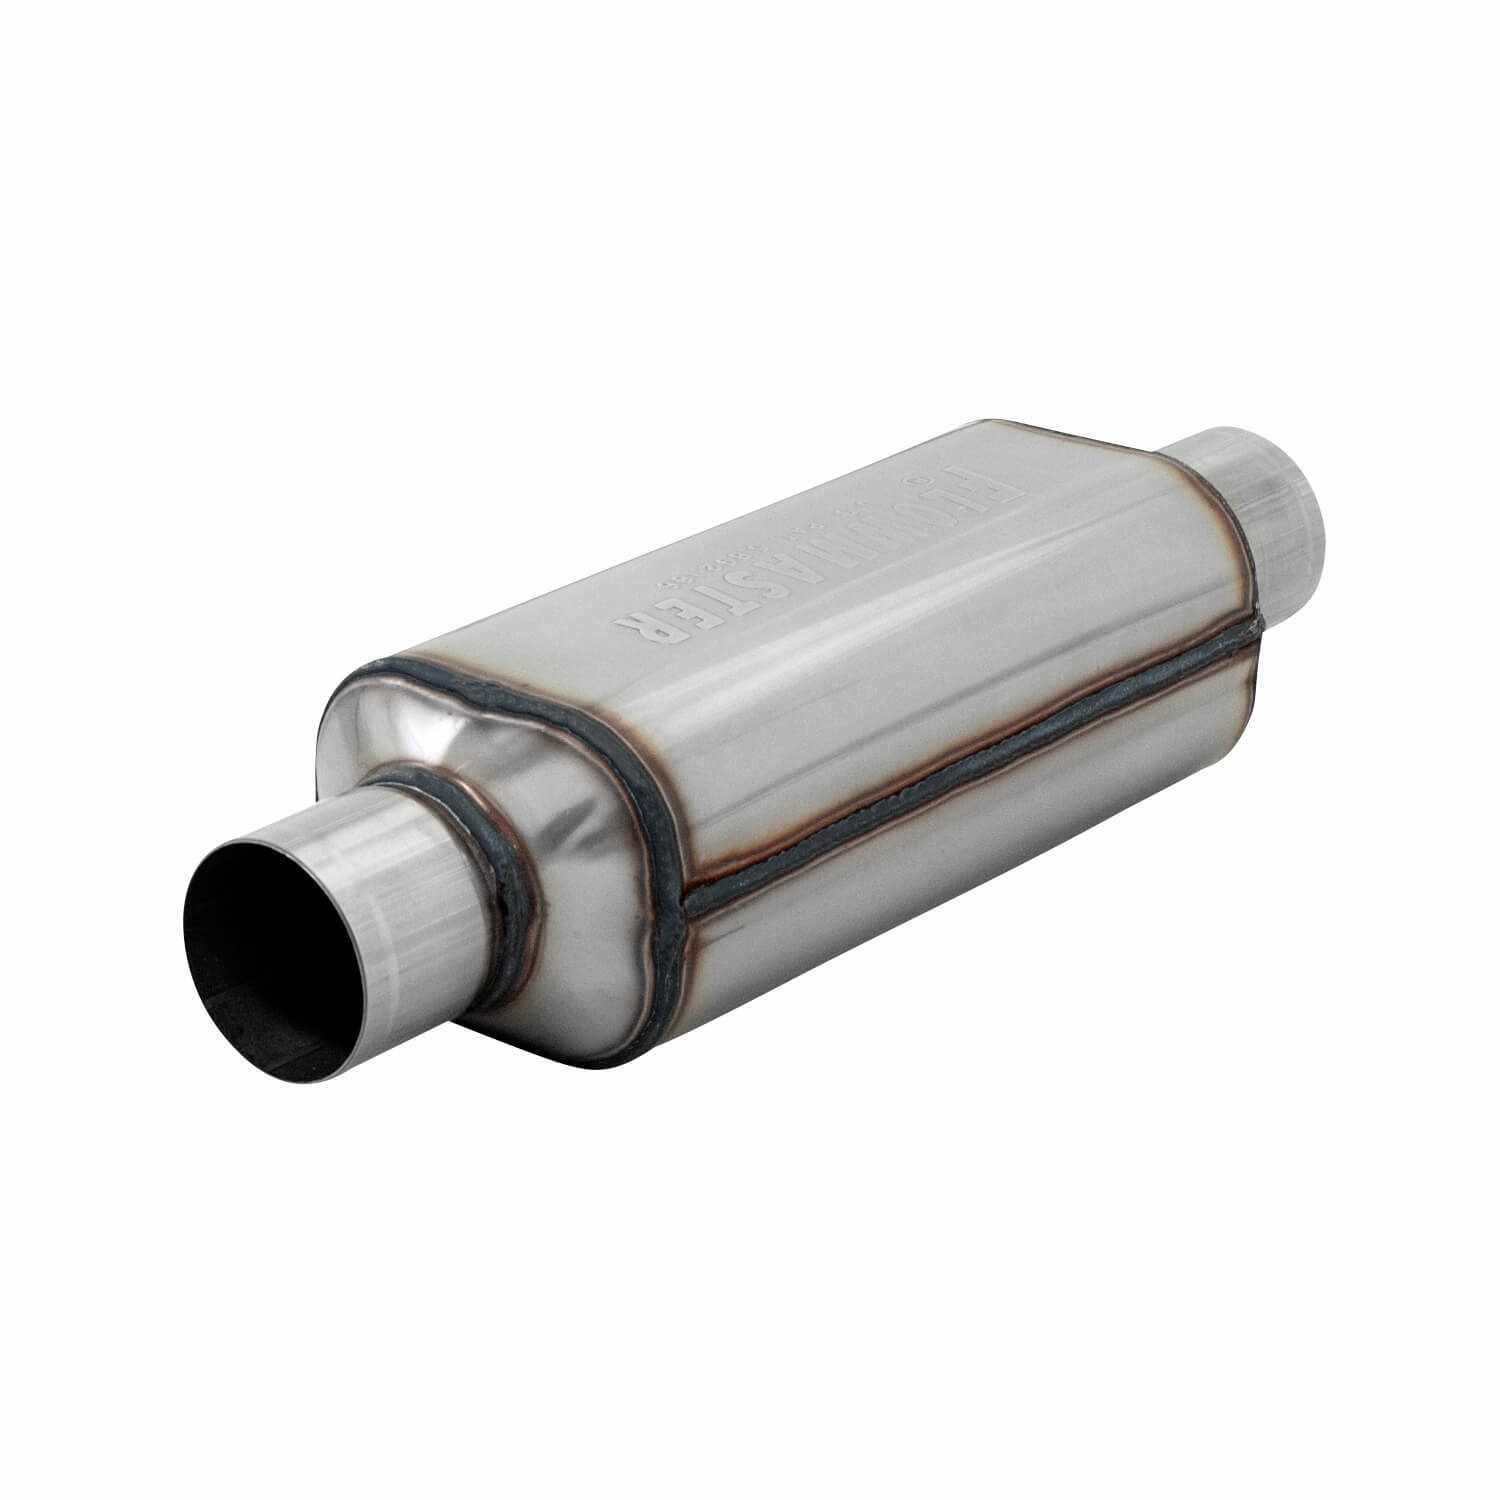 12512304 Flowmaster Super HP-2 Series Muffler